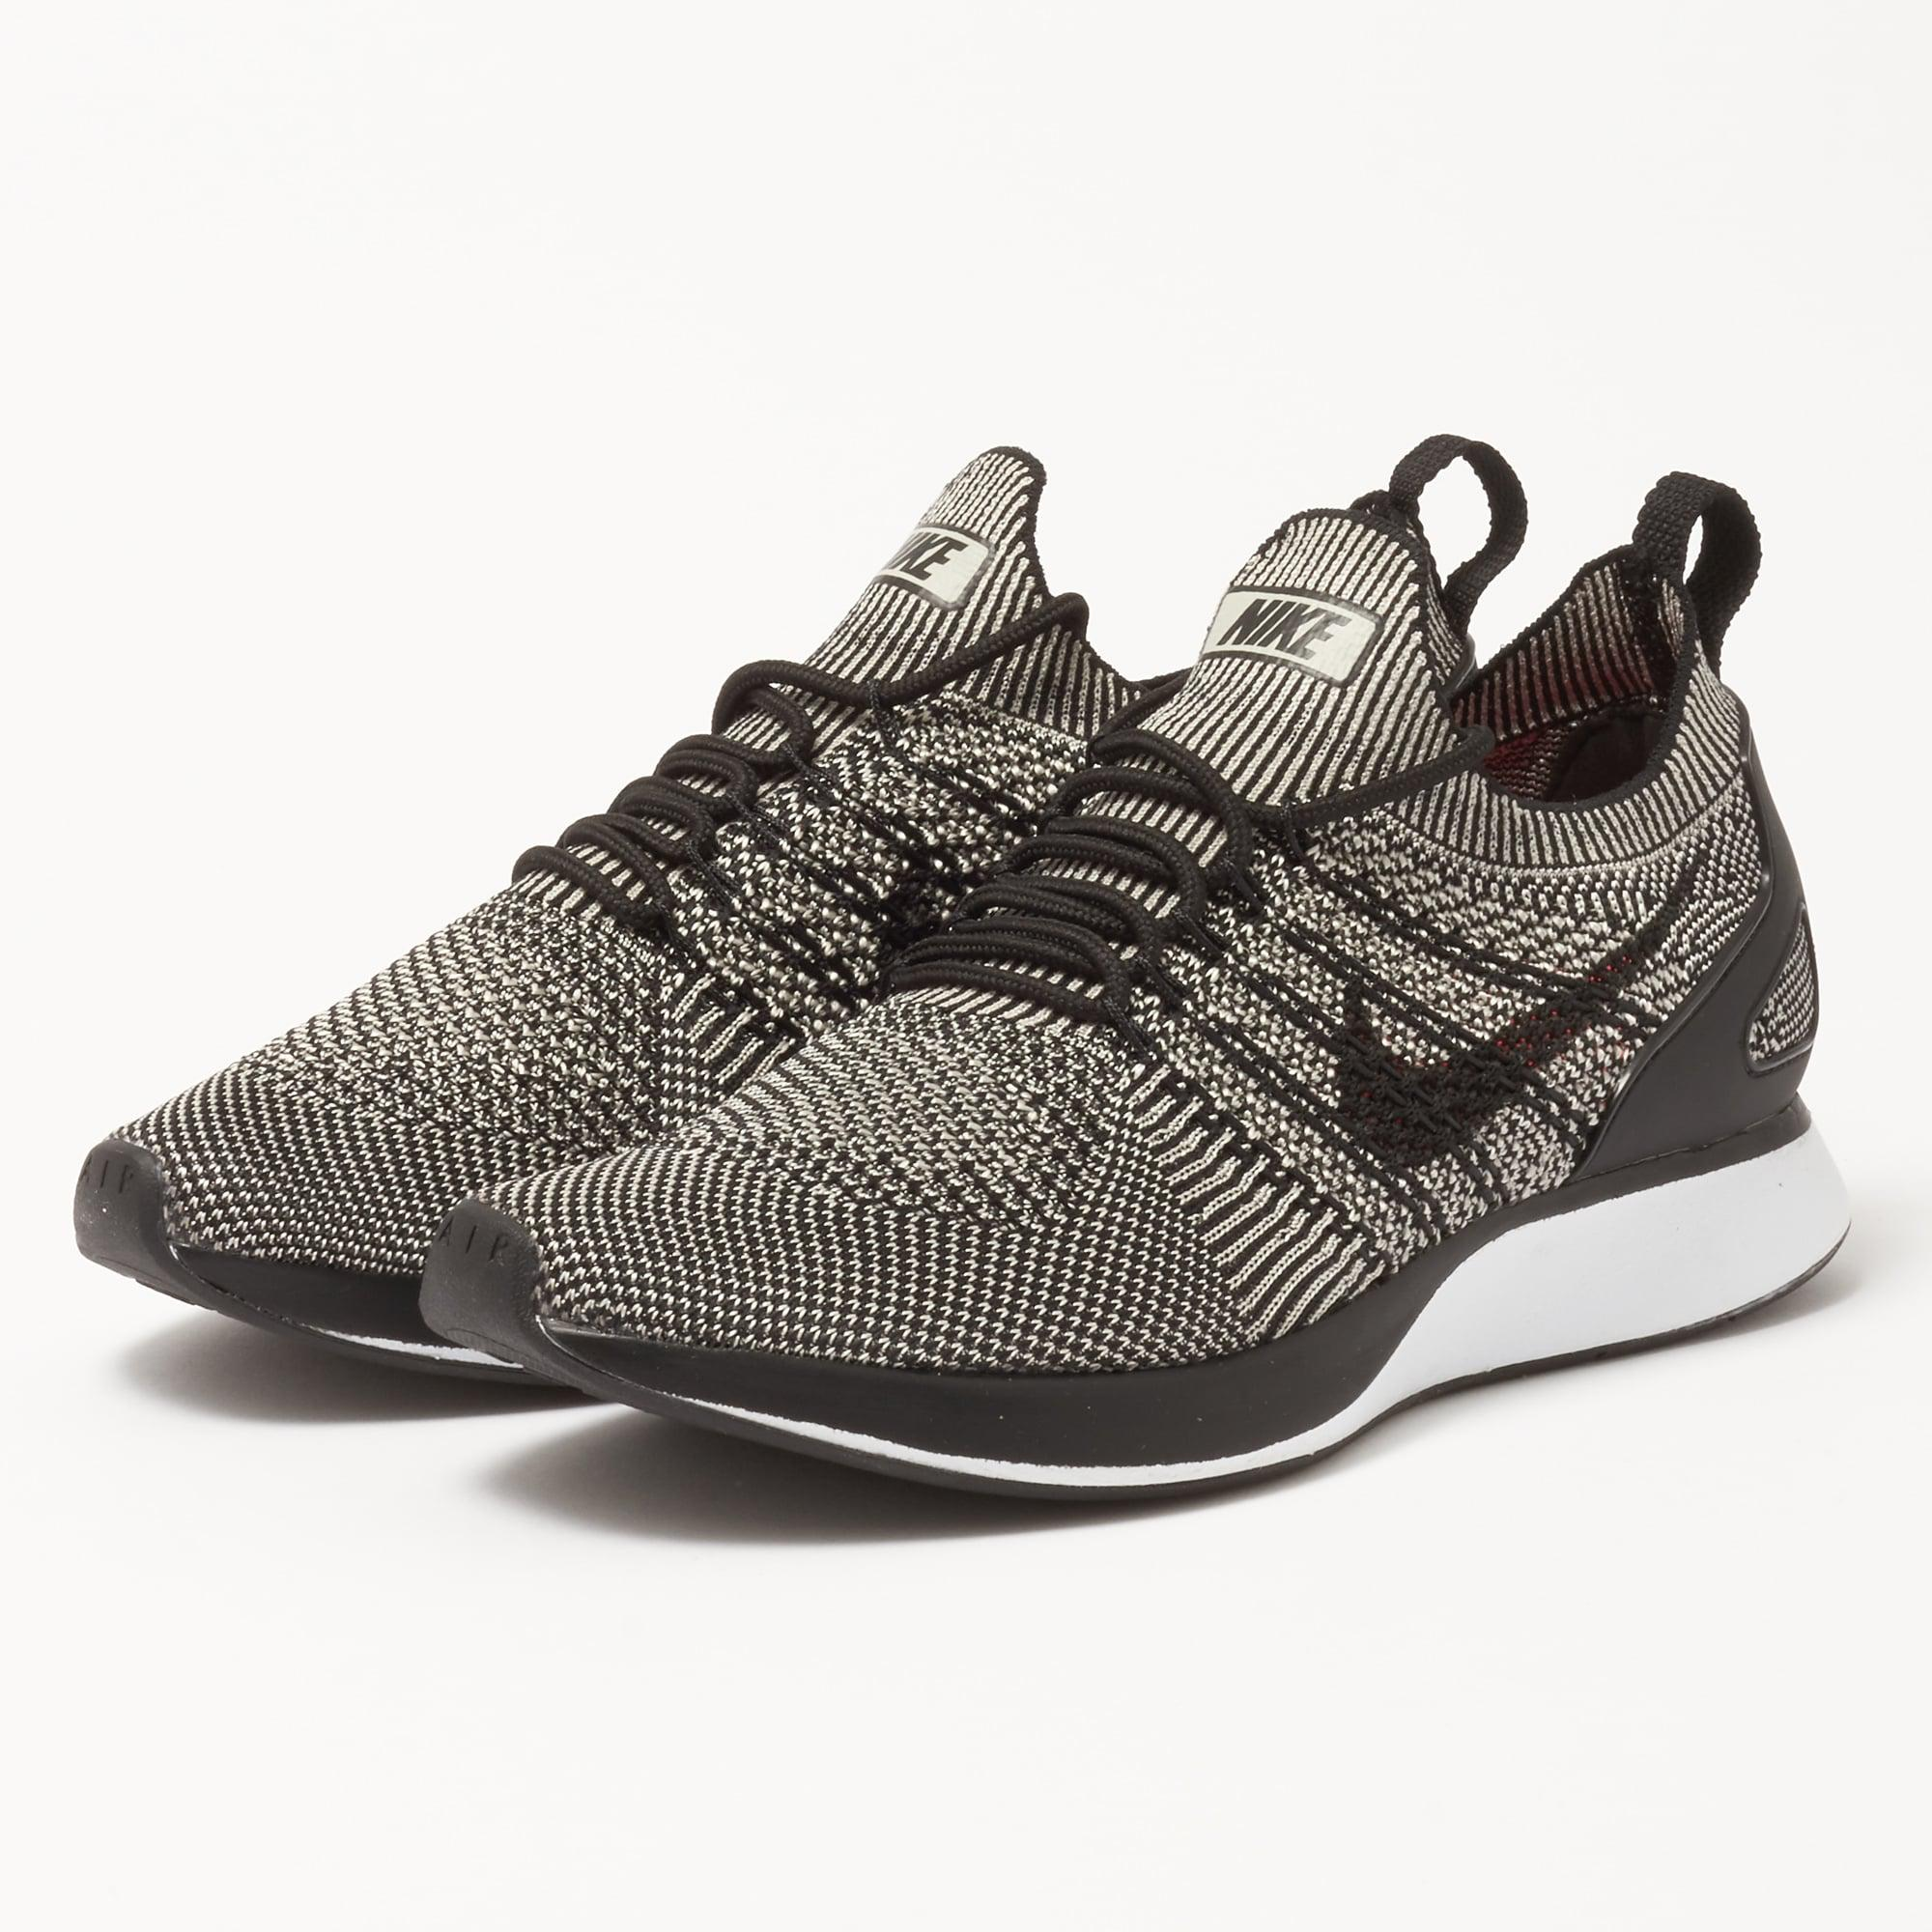 Lyst - Nike Air Zoom Mariah Flyknit Racer - Pale Grey in Black for Men dc7ec70e73